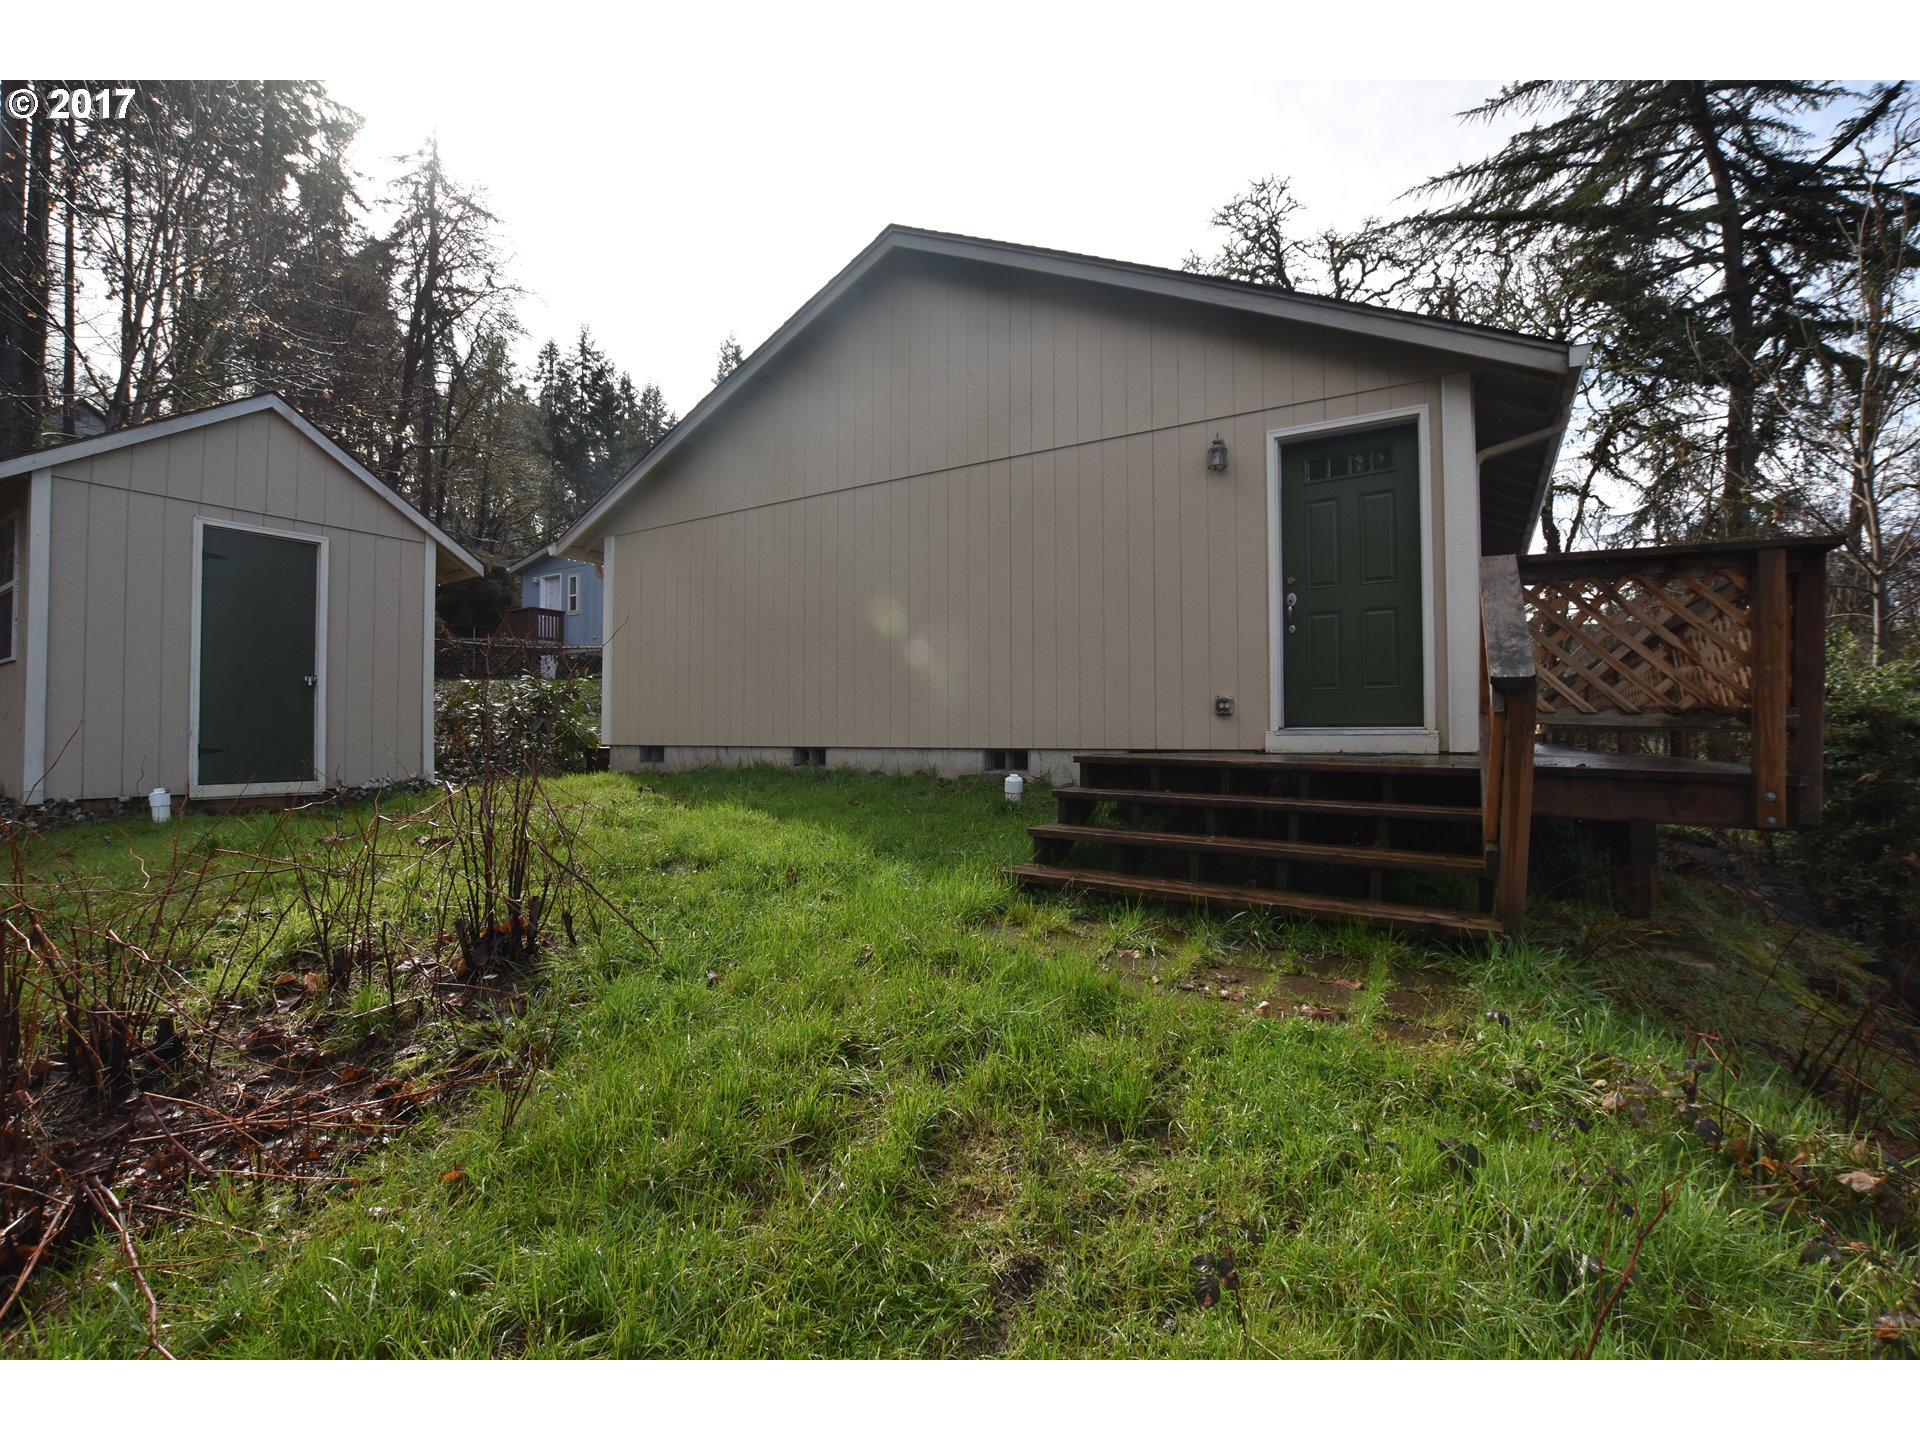 539 S 5TH ST, Springfield, OR 97477